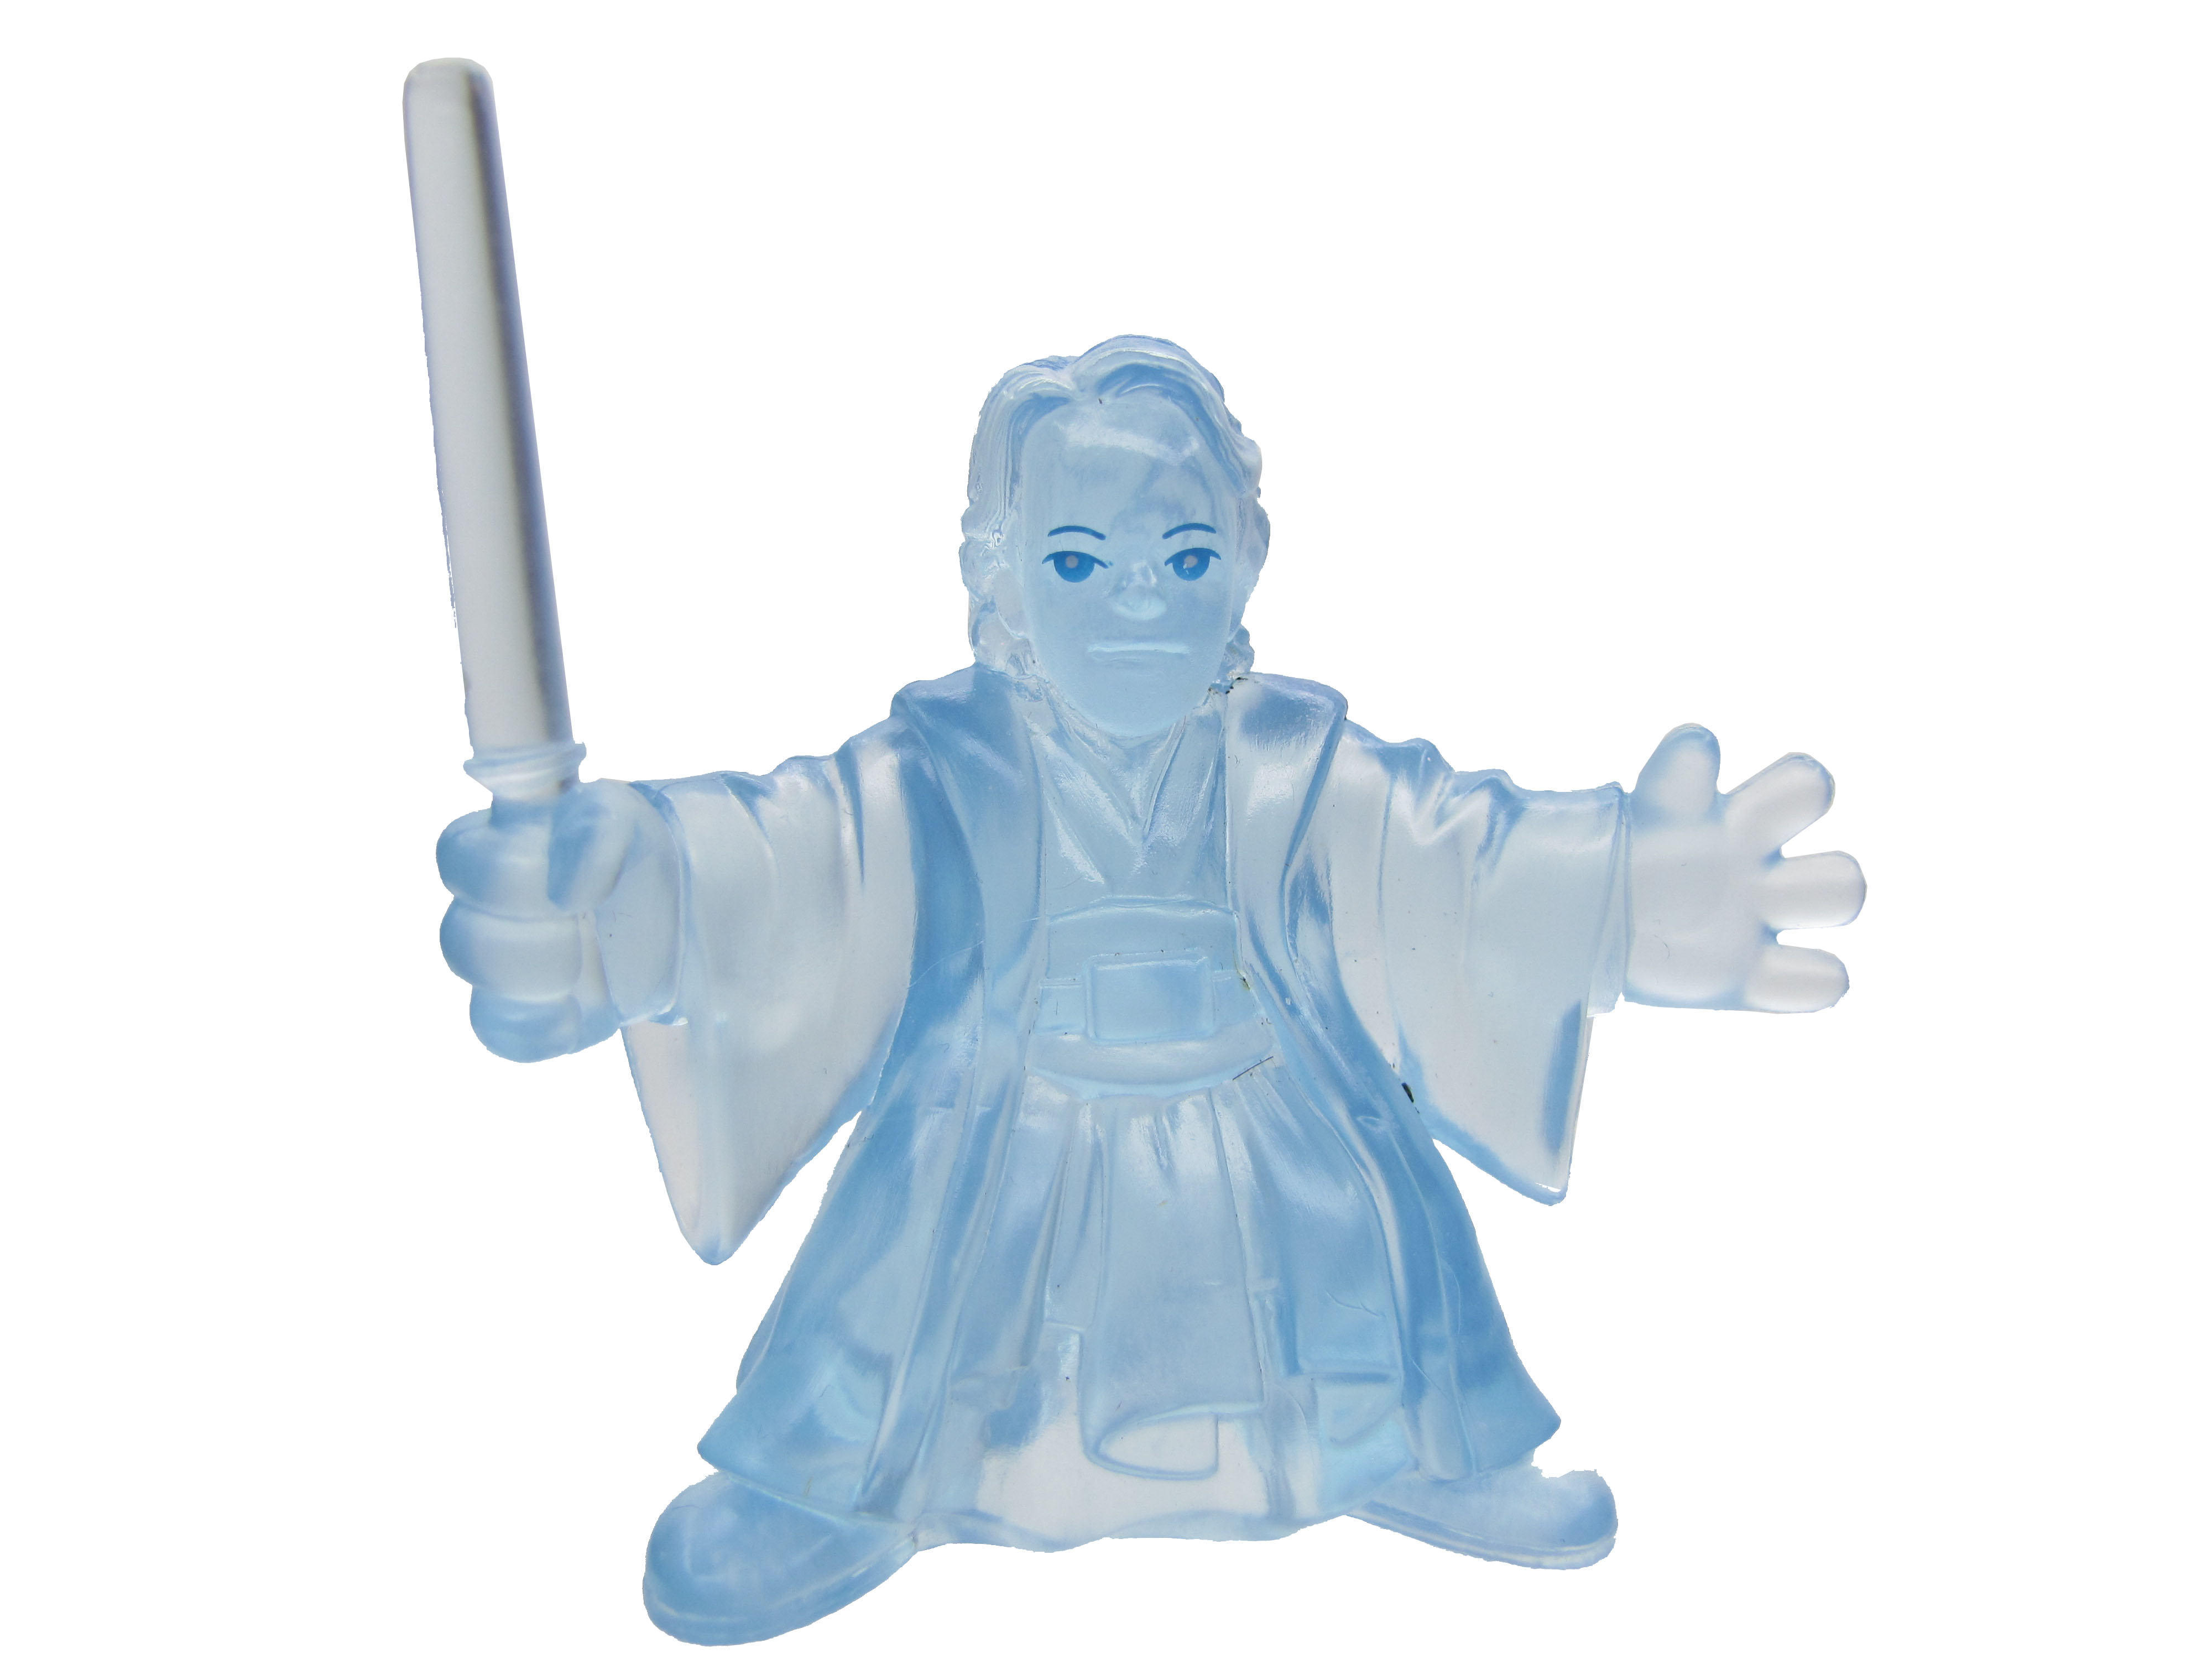 Star Wars Galactic Heroes ENDOR CELEBRATION SPIRIT OF ANAKIN